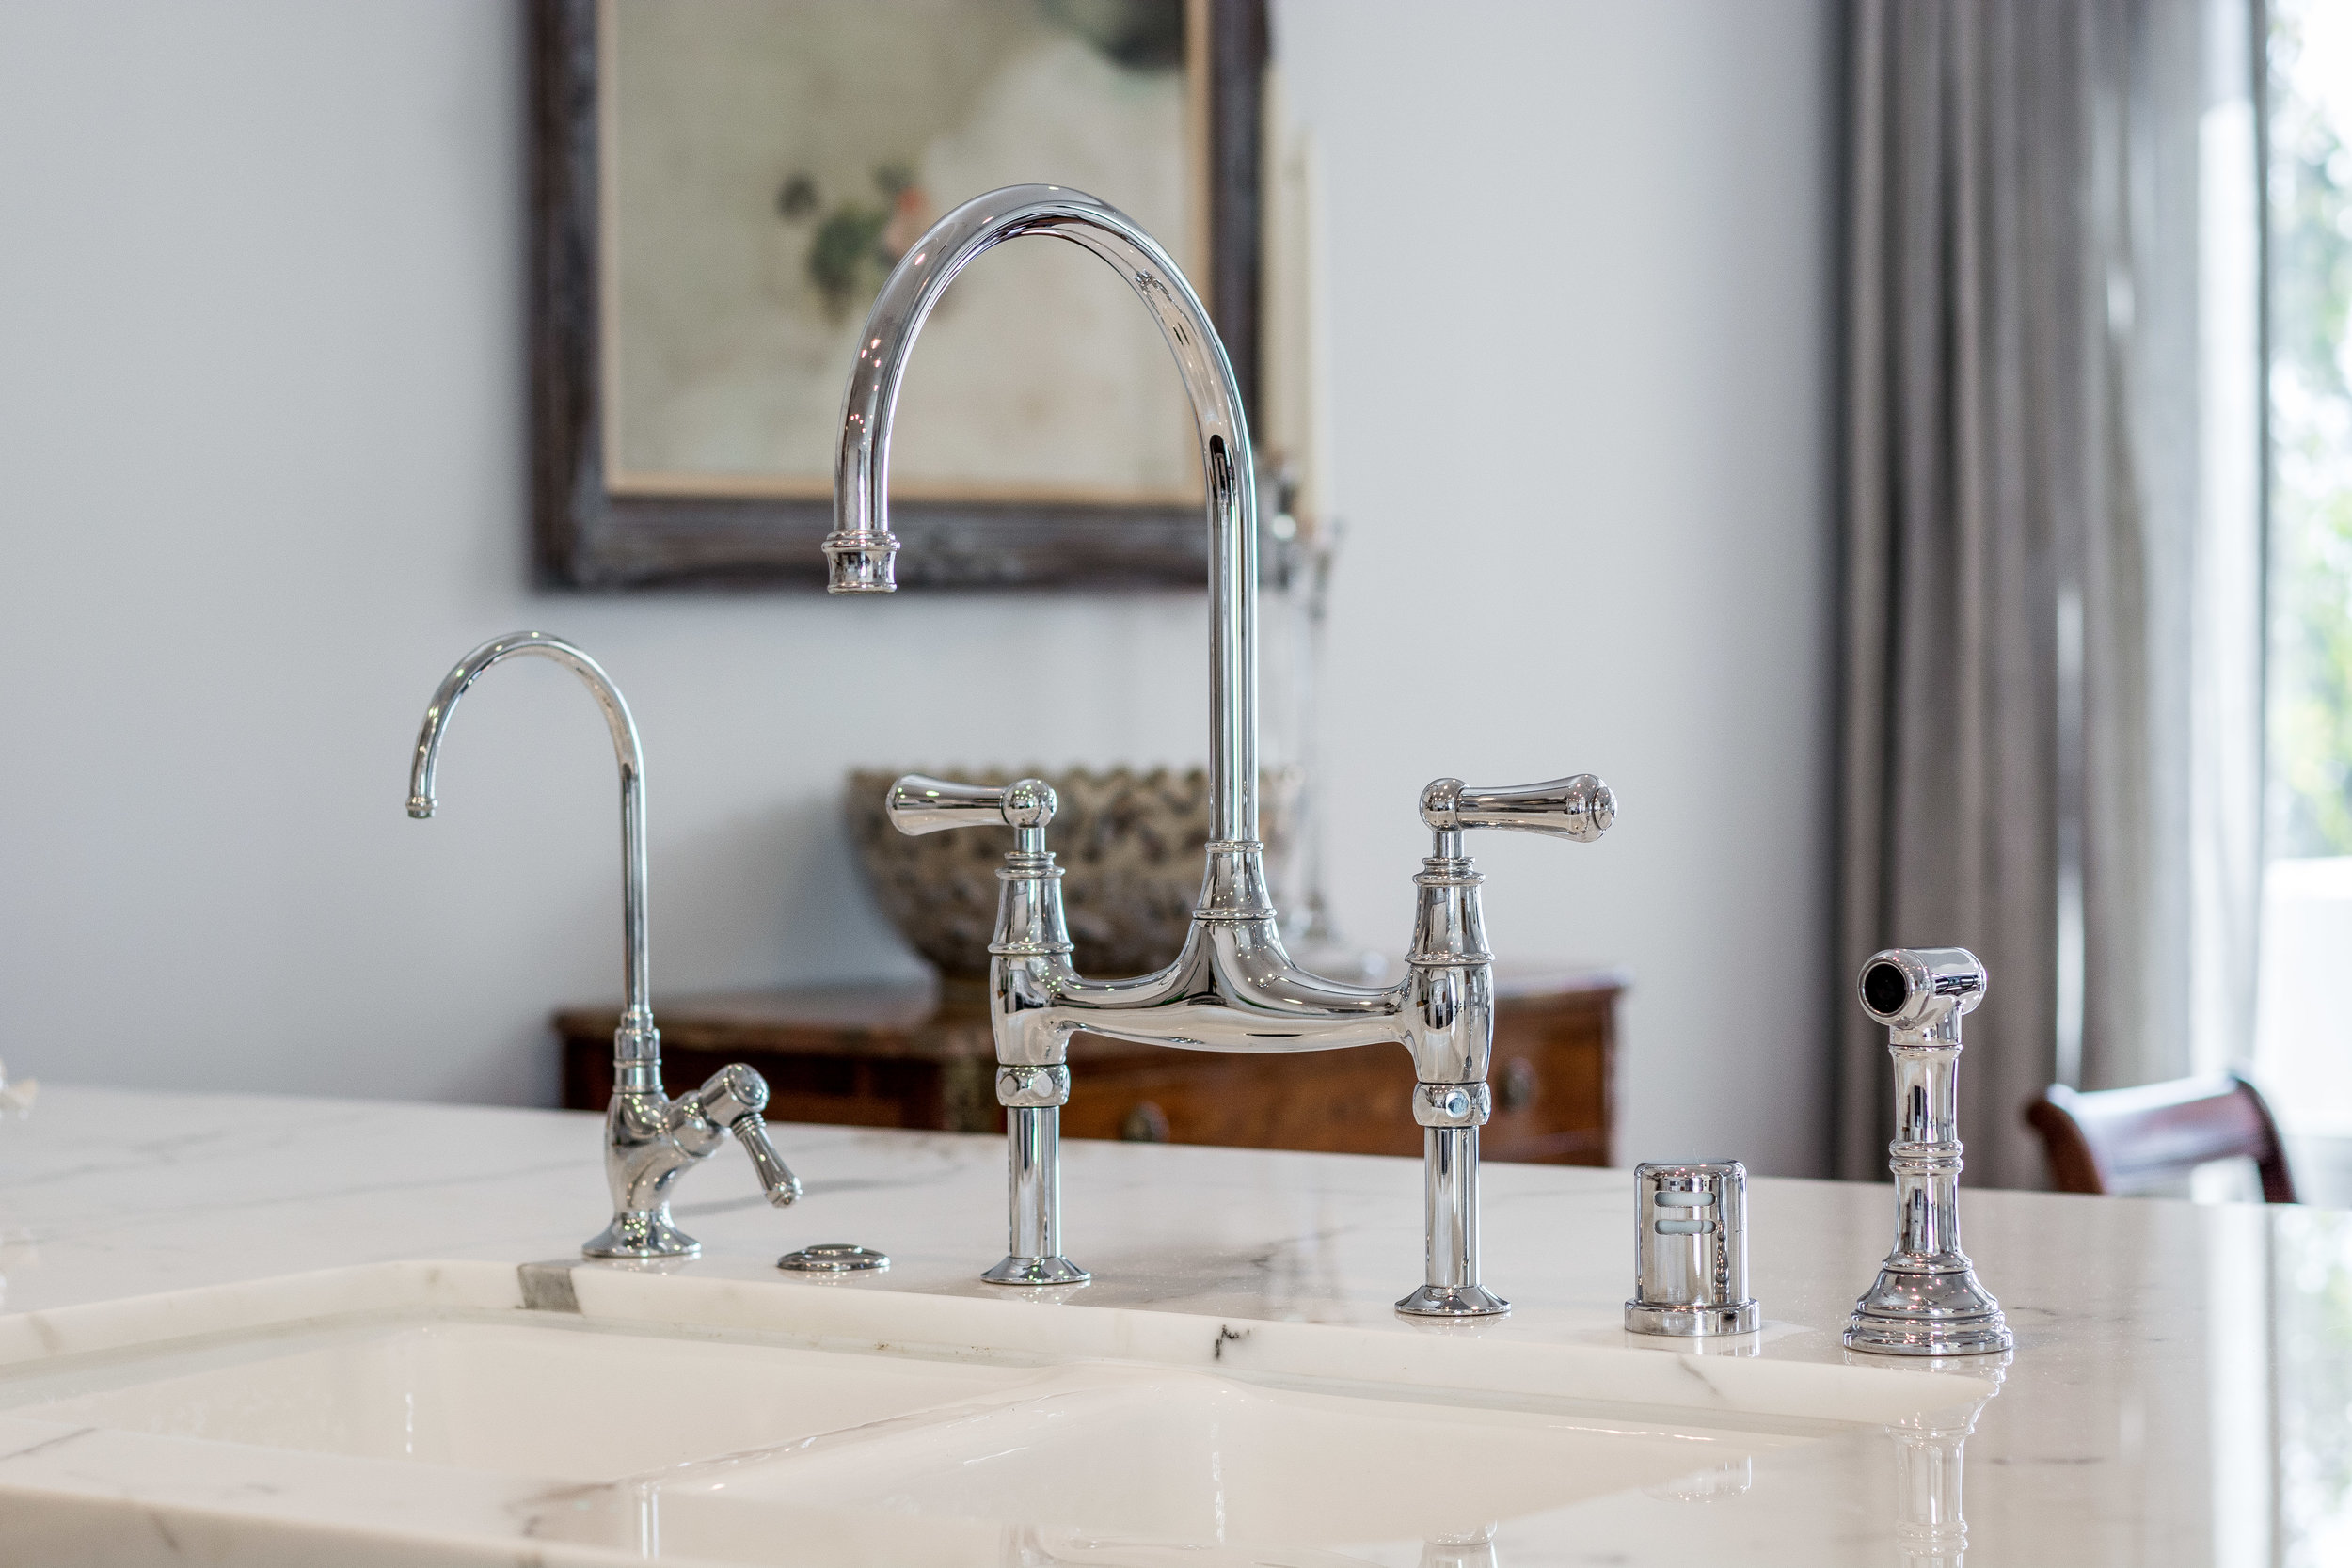 Delivered photo of the kitchen faucet ©Ryan Carr - Legacy Listing Photography - 2017